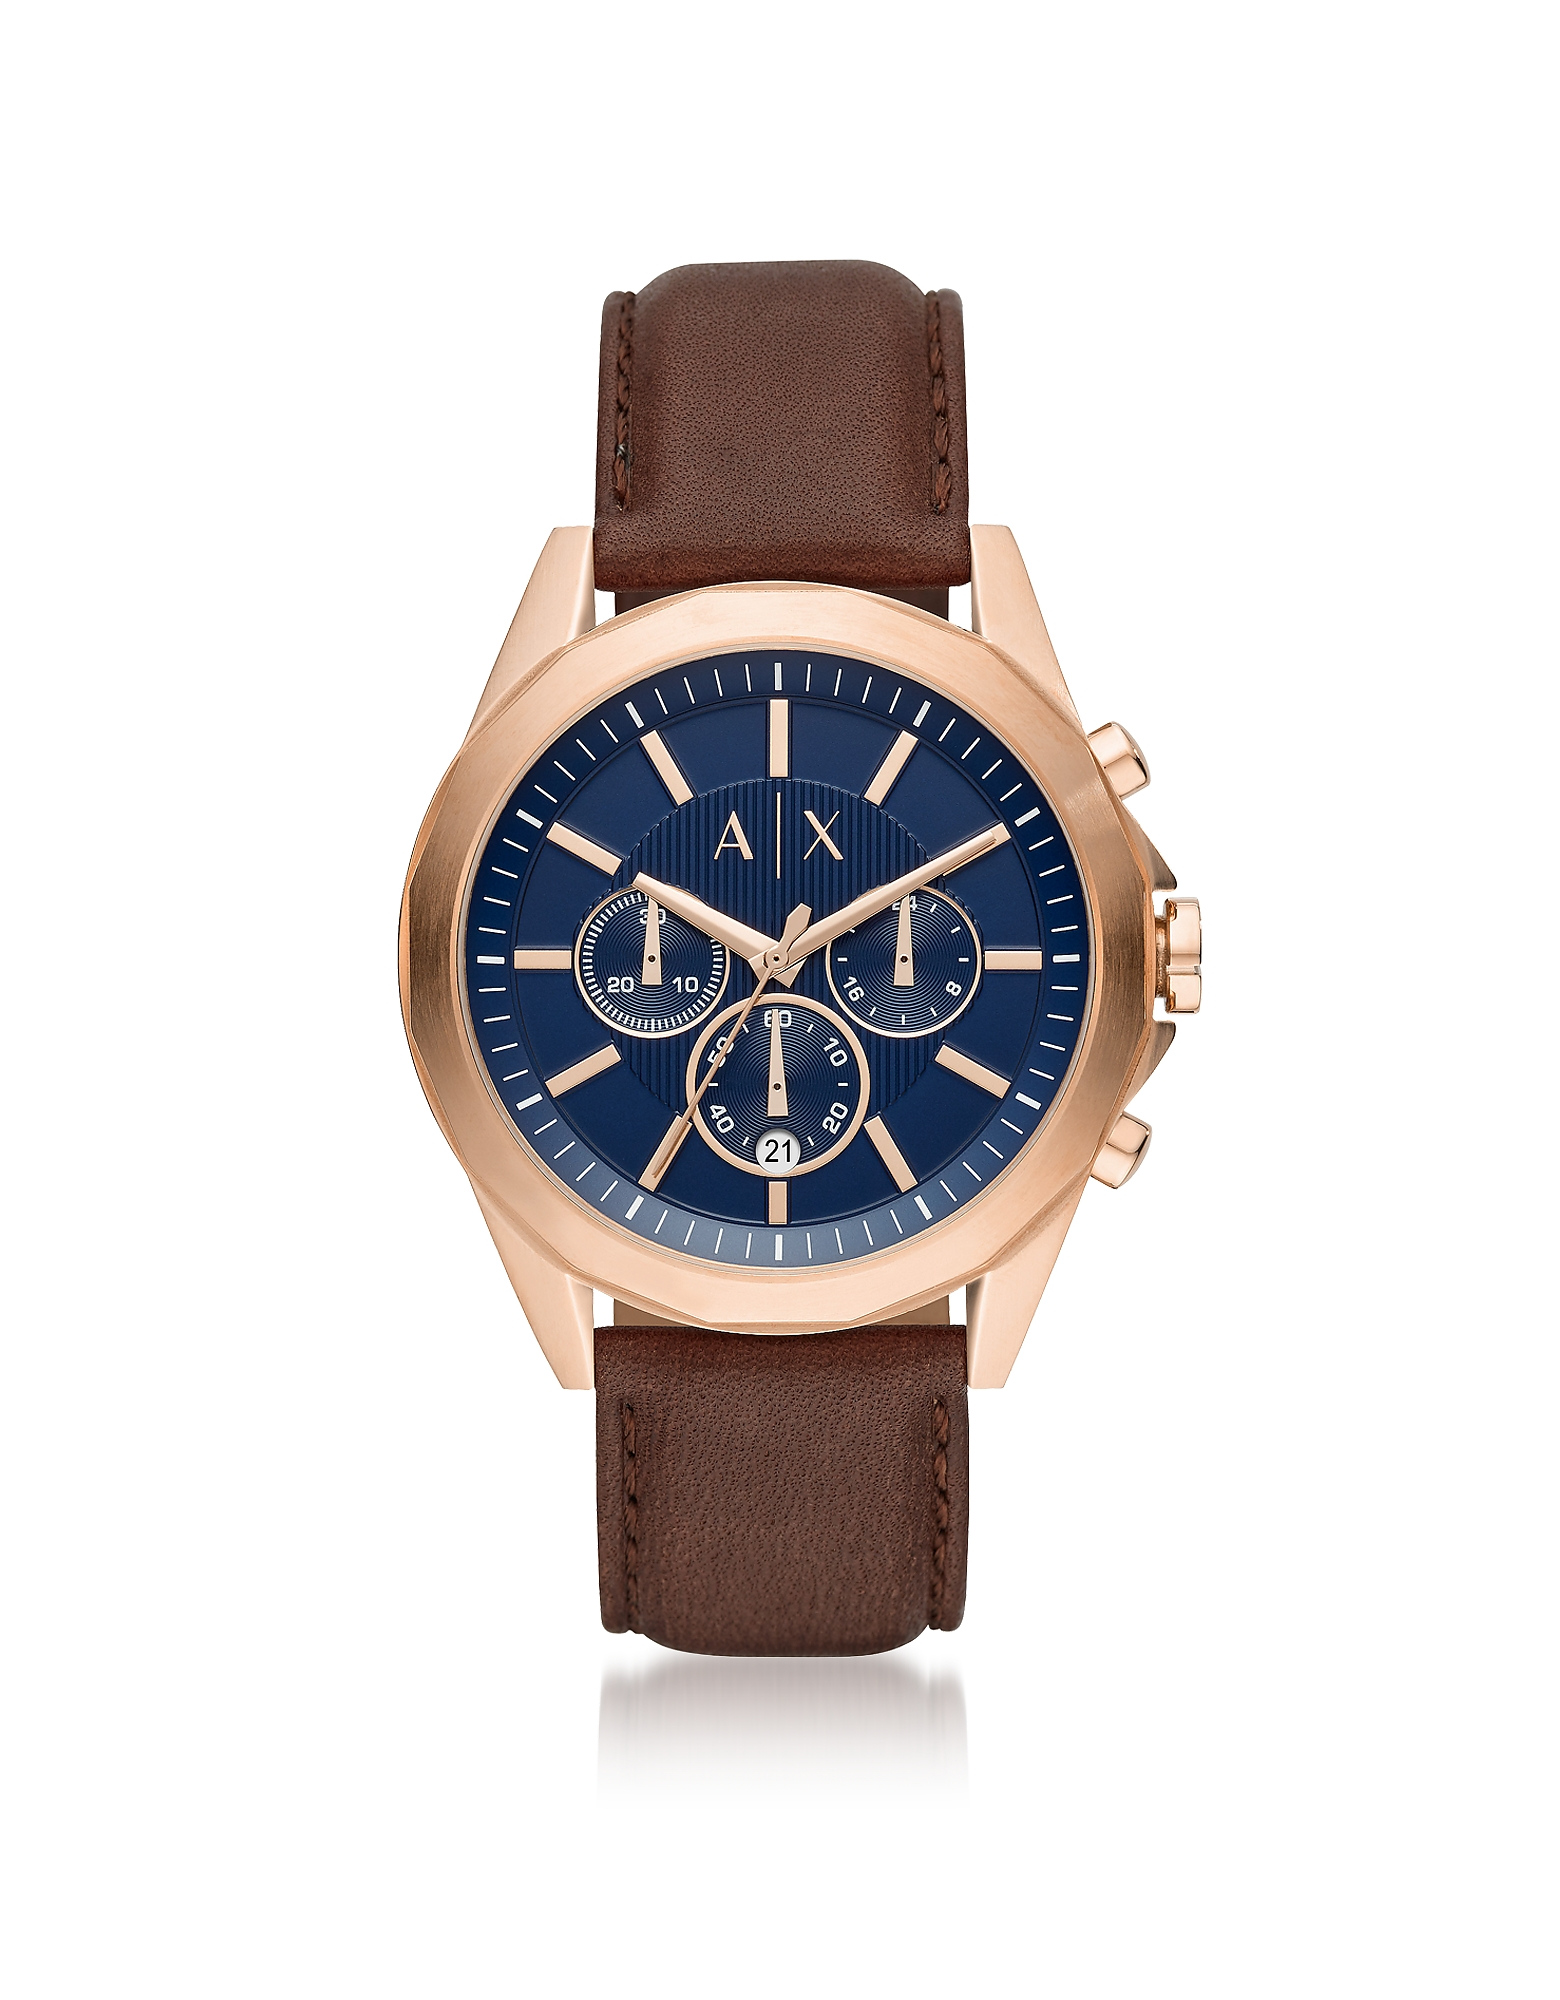 Drexler Blue Dial and Brown Leather Men's Chronograph Watch